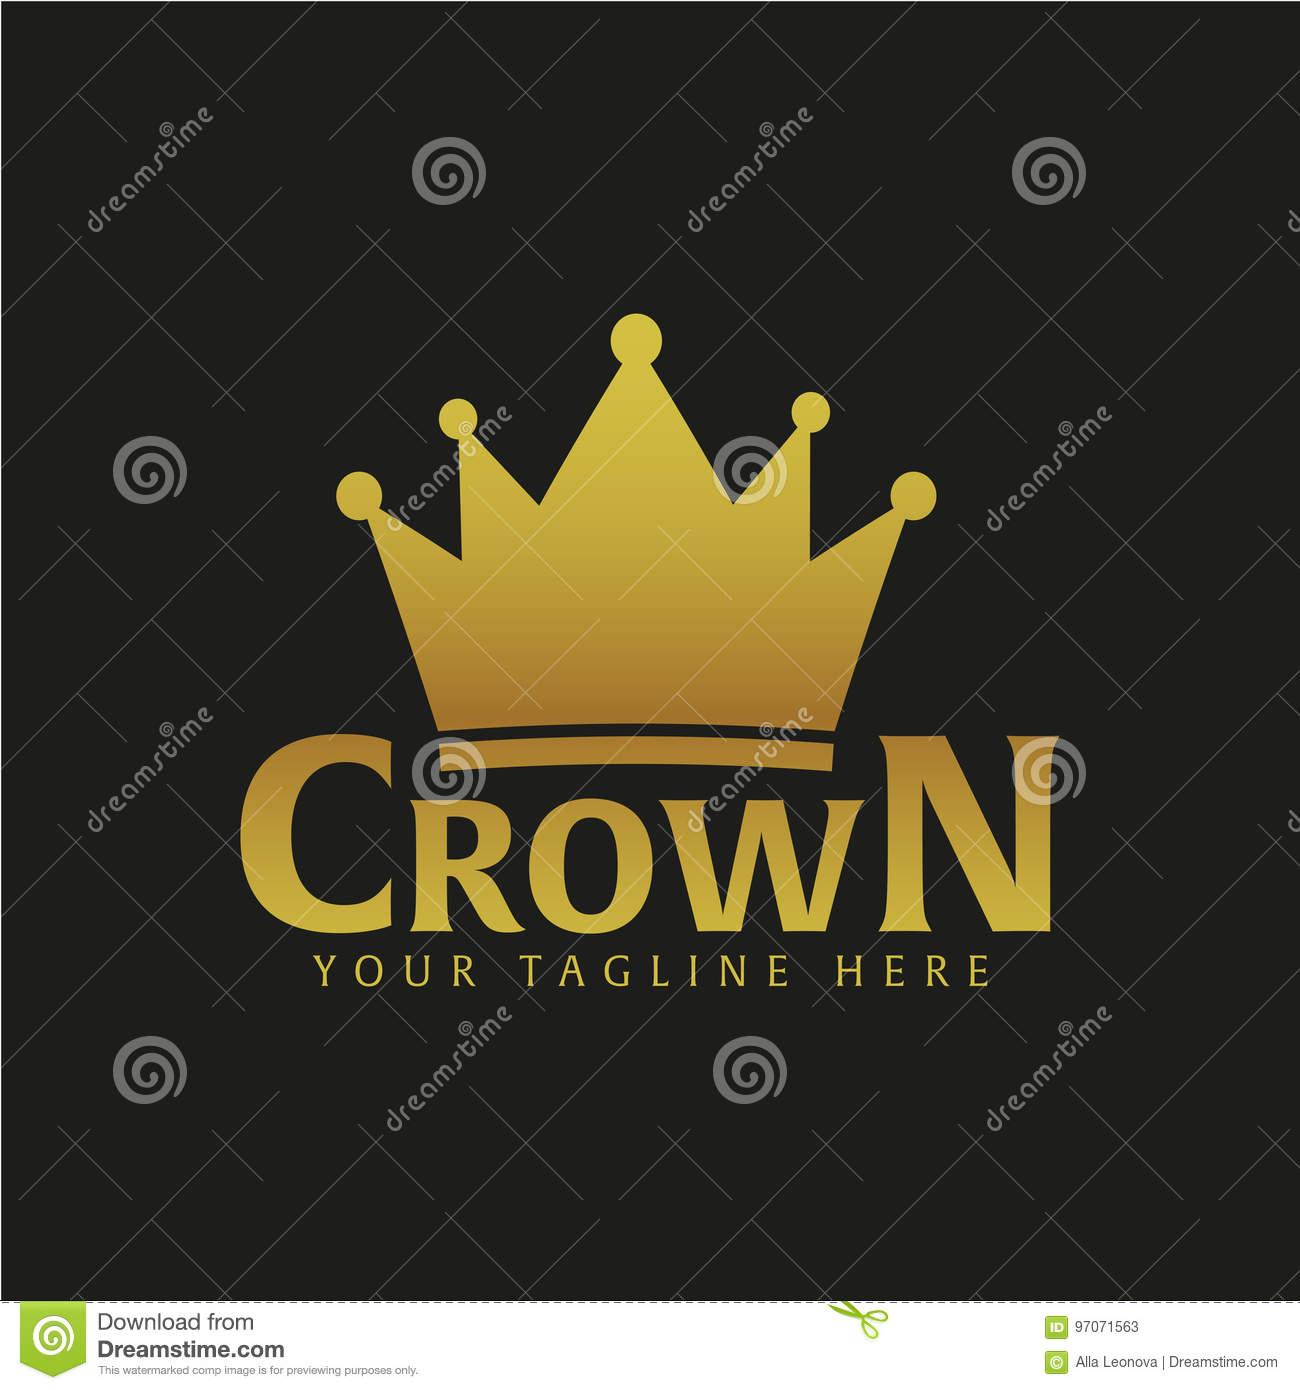 Crown Hotel Logo And Emblem Vector Logo Illustration Stock Illustration Illustration Of Logo Hipster 97071563